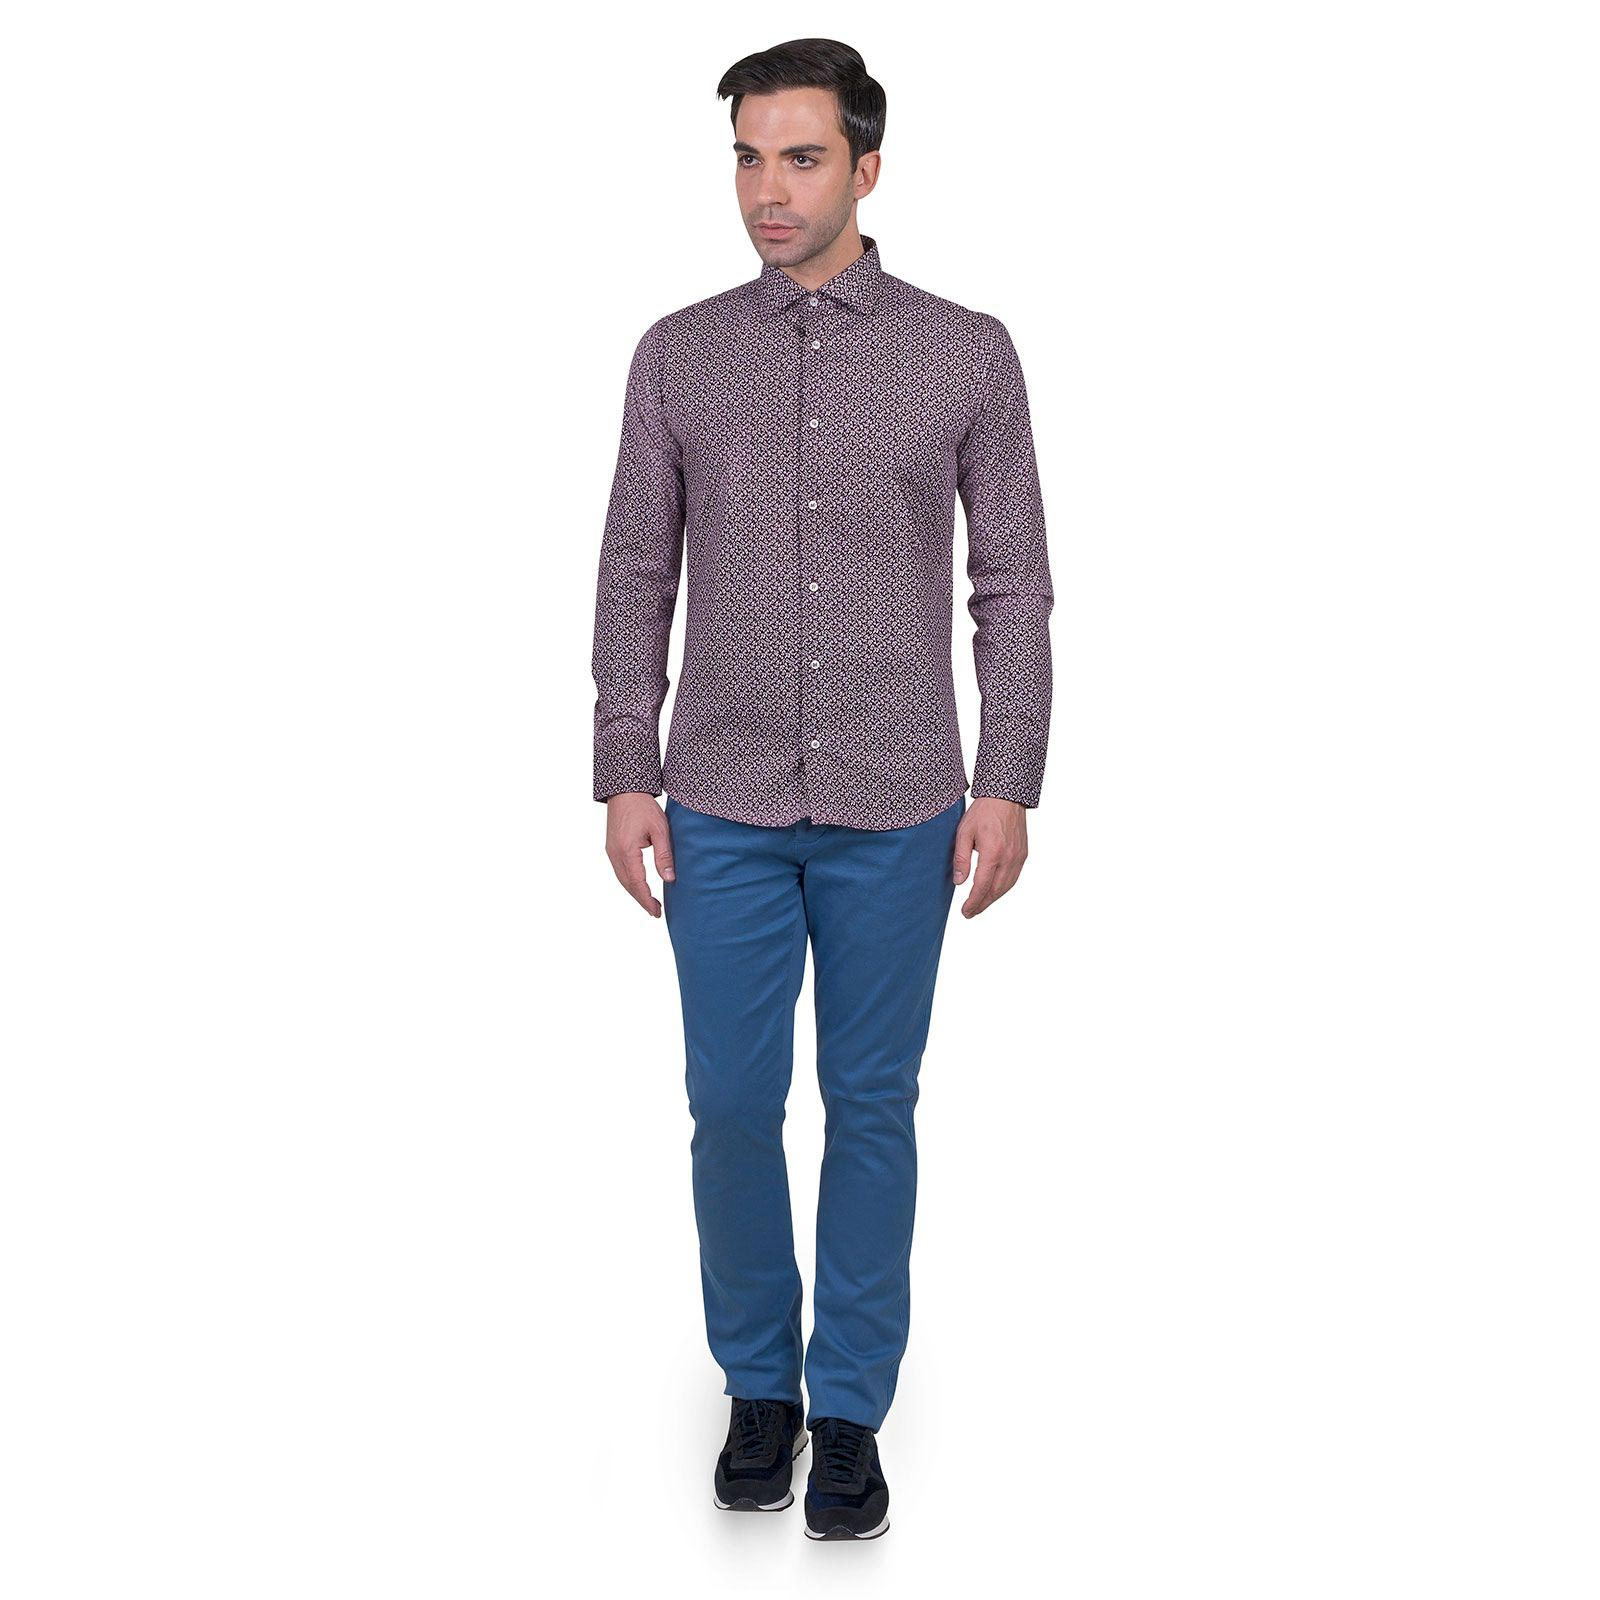 Prince Oliver Παντελόνι Chino - Collection S S 37c49bcb0a0